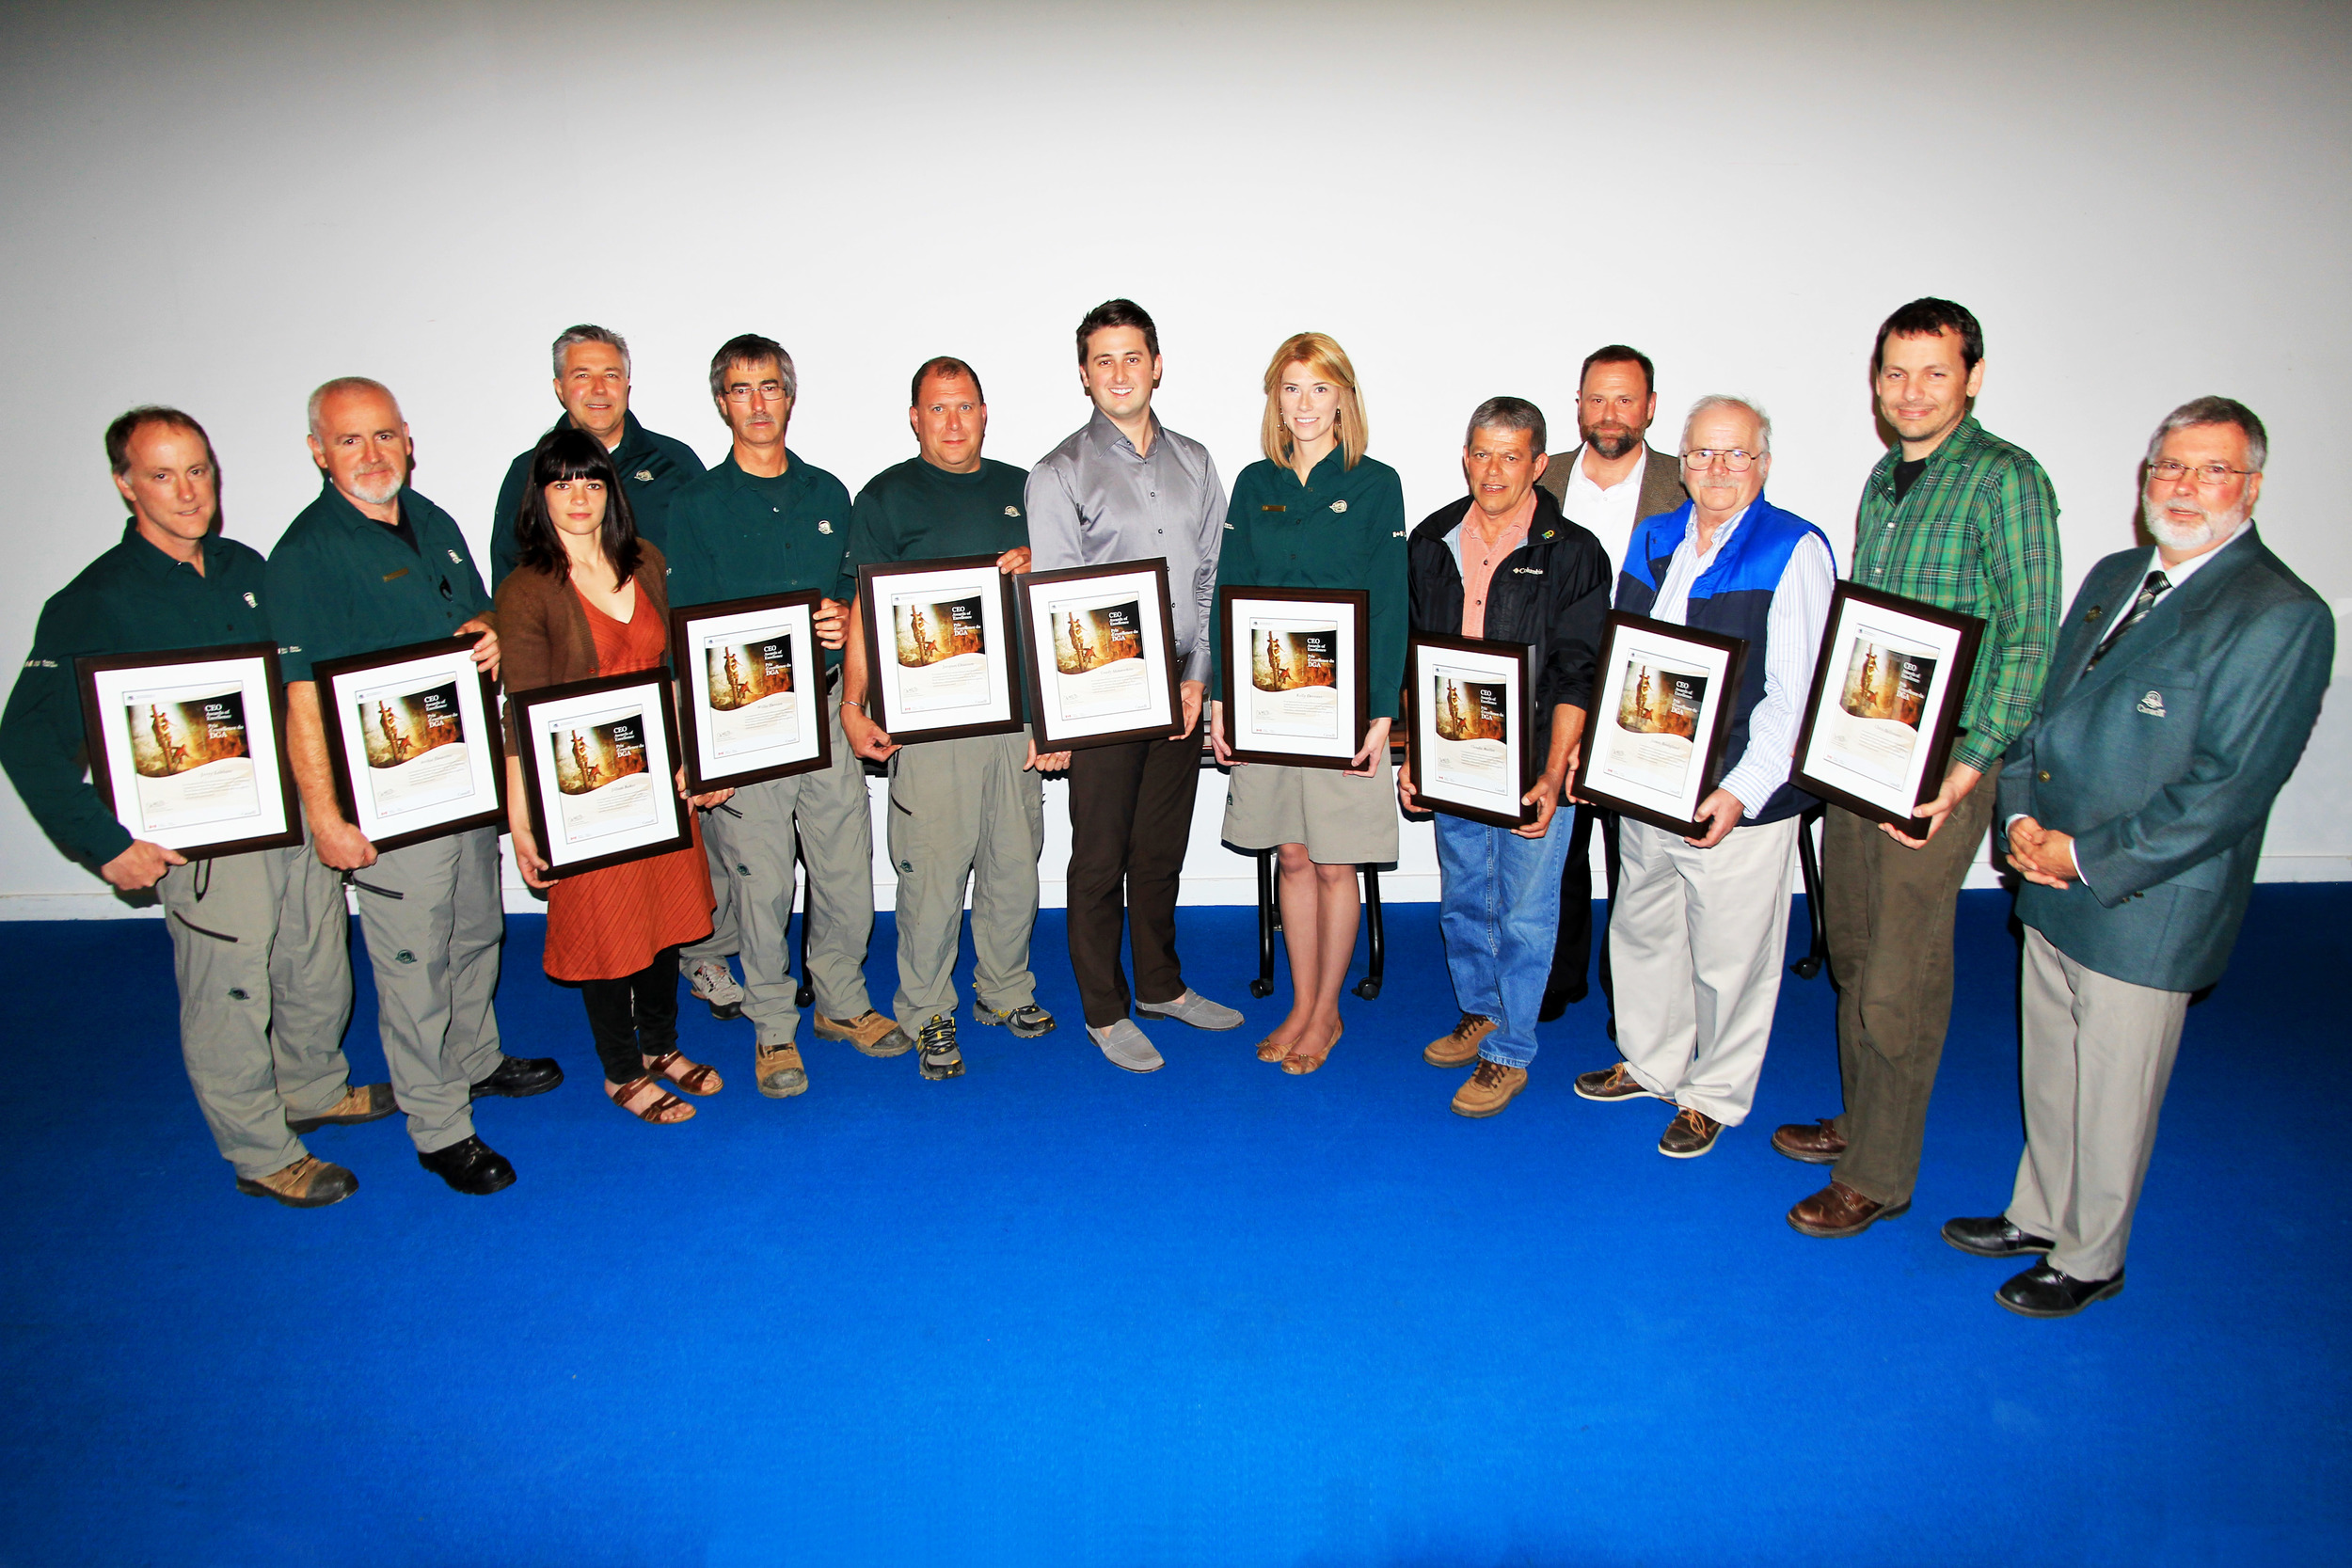 Parks Canada CEO Award recipients and presenters, from left to right: Jerry LeBlanc, Archie Doucette, Jillian Baker, Blair Purdy (Field Unit Superintendent for Cape Breton Field Unit), Willie Deveau, Jacques Chiasson, Coady Slaunwhite, Kelly Deveaux, Claudie Maillet, George Green (Parks Canada's Vice-President of Heritage Conservation and Commemoration), James Bridgland, Chris Bellemore, and Derek Quann (Acting Superintendent for Cape Breton Highlands National Park).